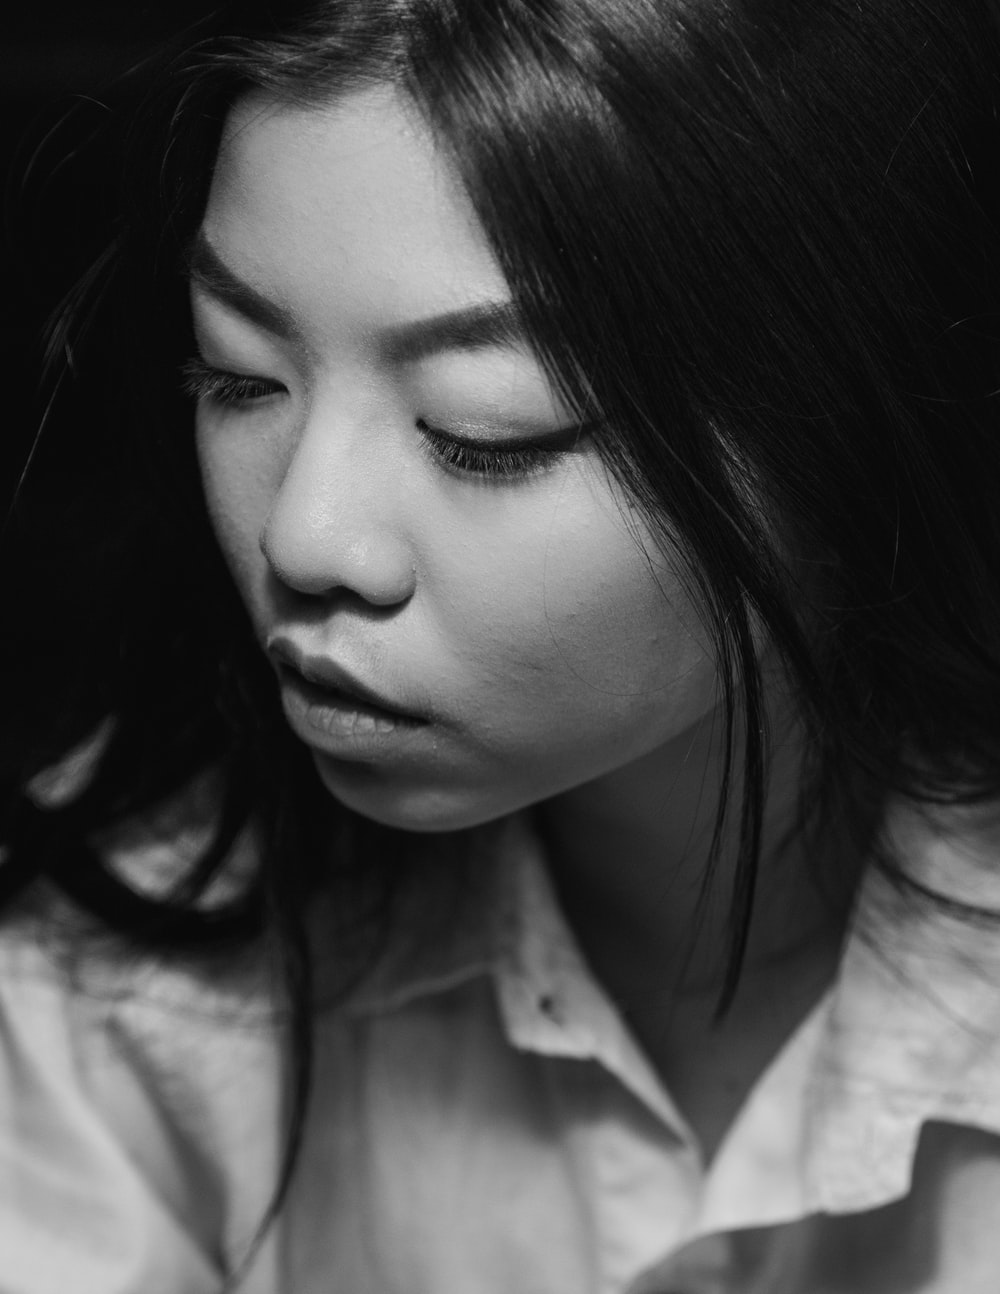 grayscale portrait photography of woman